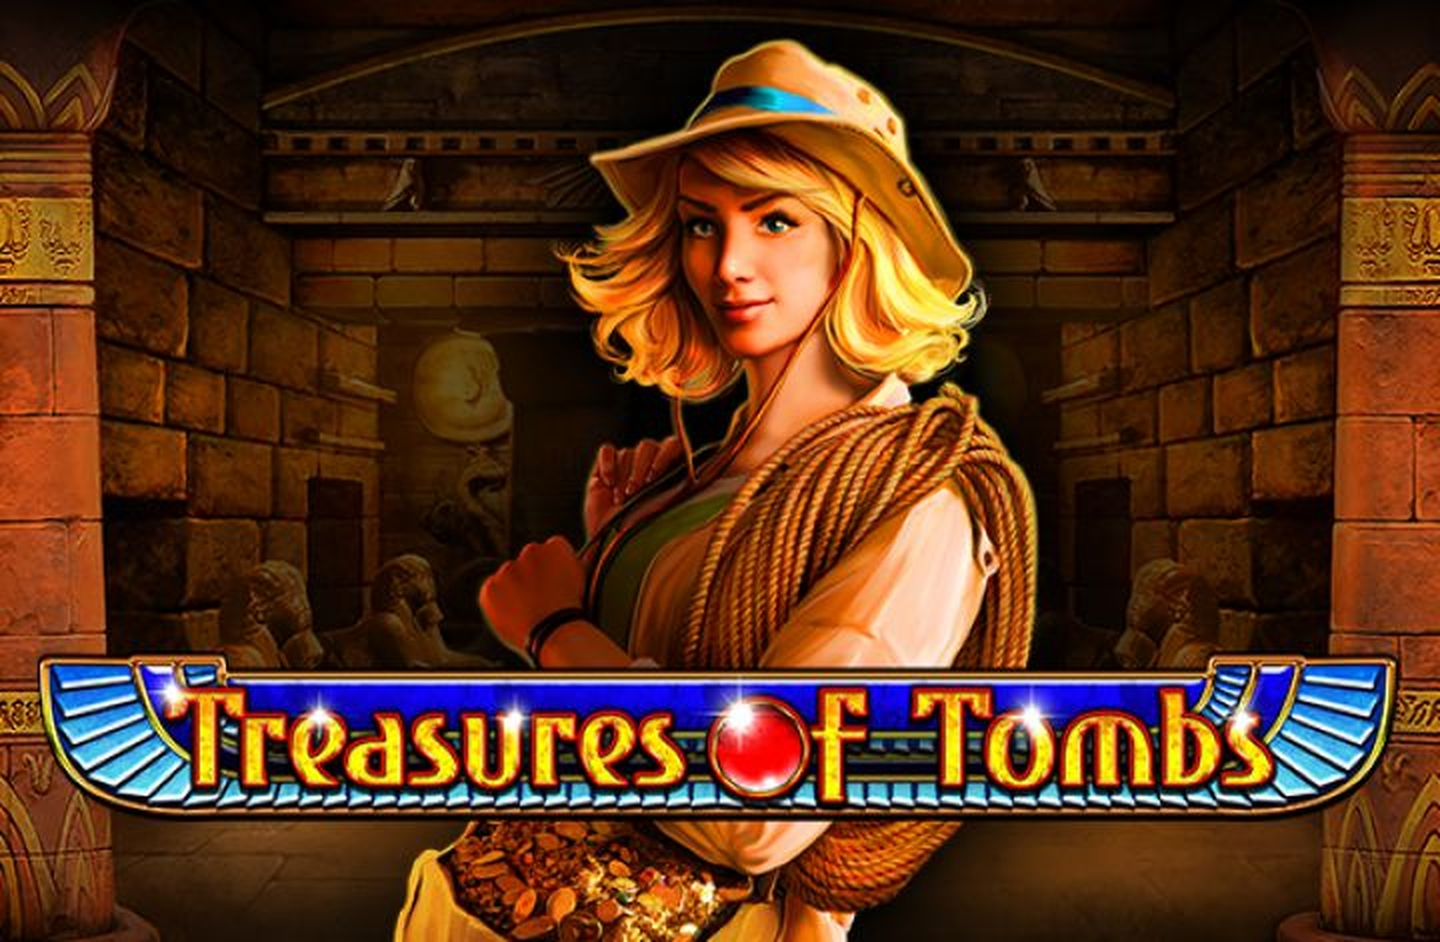 The Treasure of Tombs Online Slot Demo Game by Playson